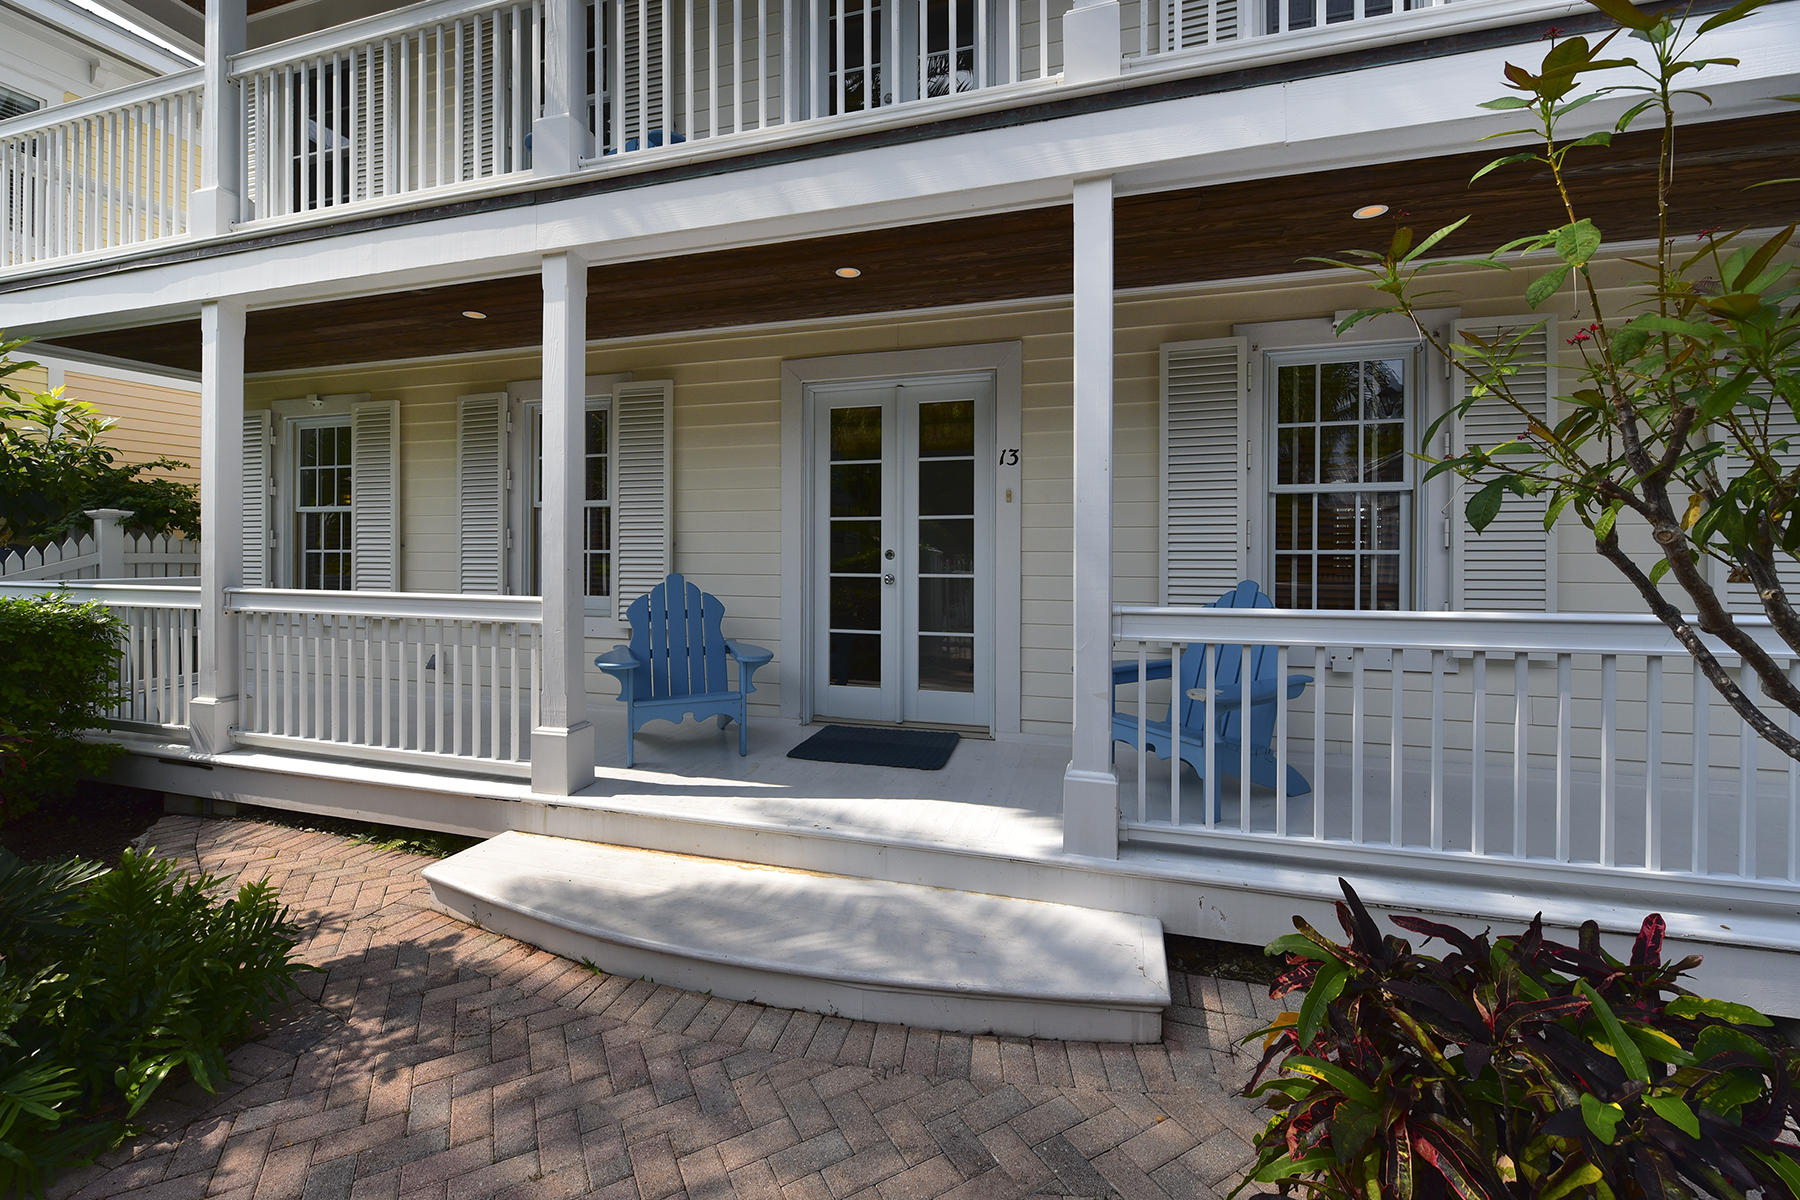 Single Family Homes for Sale at 13 Sunset Key Drive, Key West, FL 13 Sunset Key Drive Key West, Florida 33040 United States